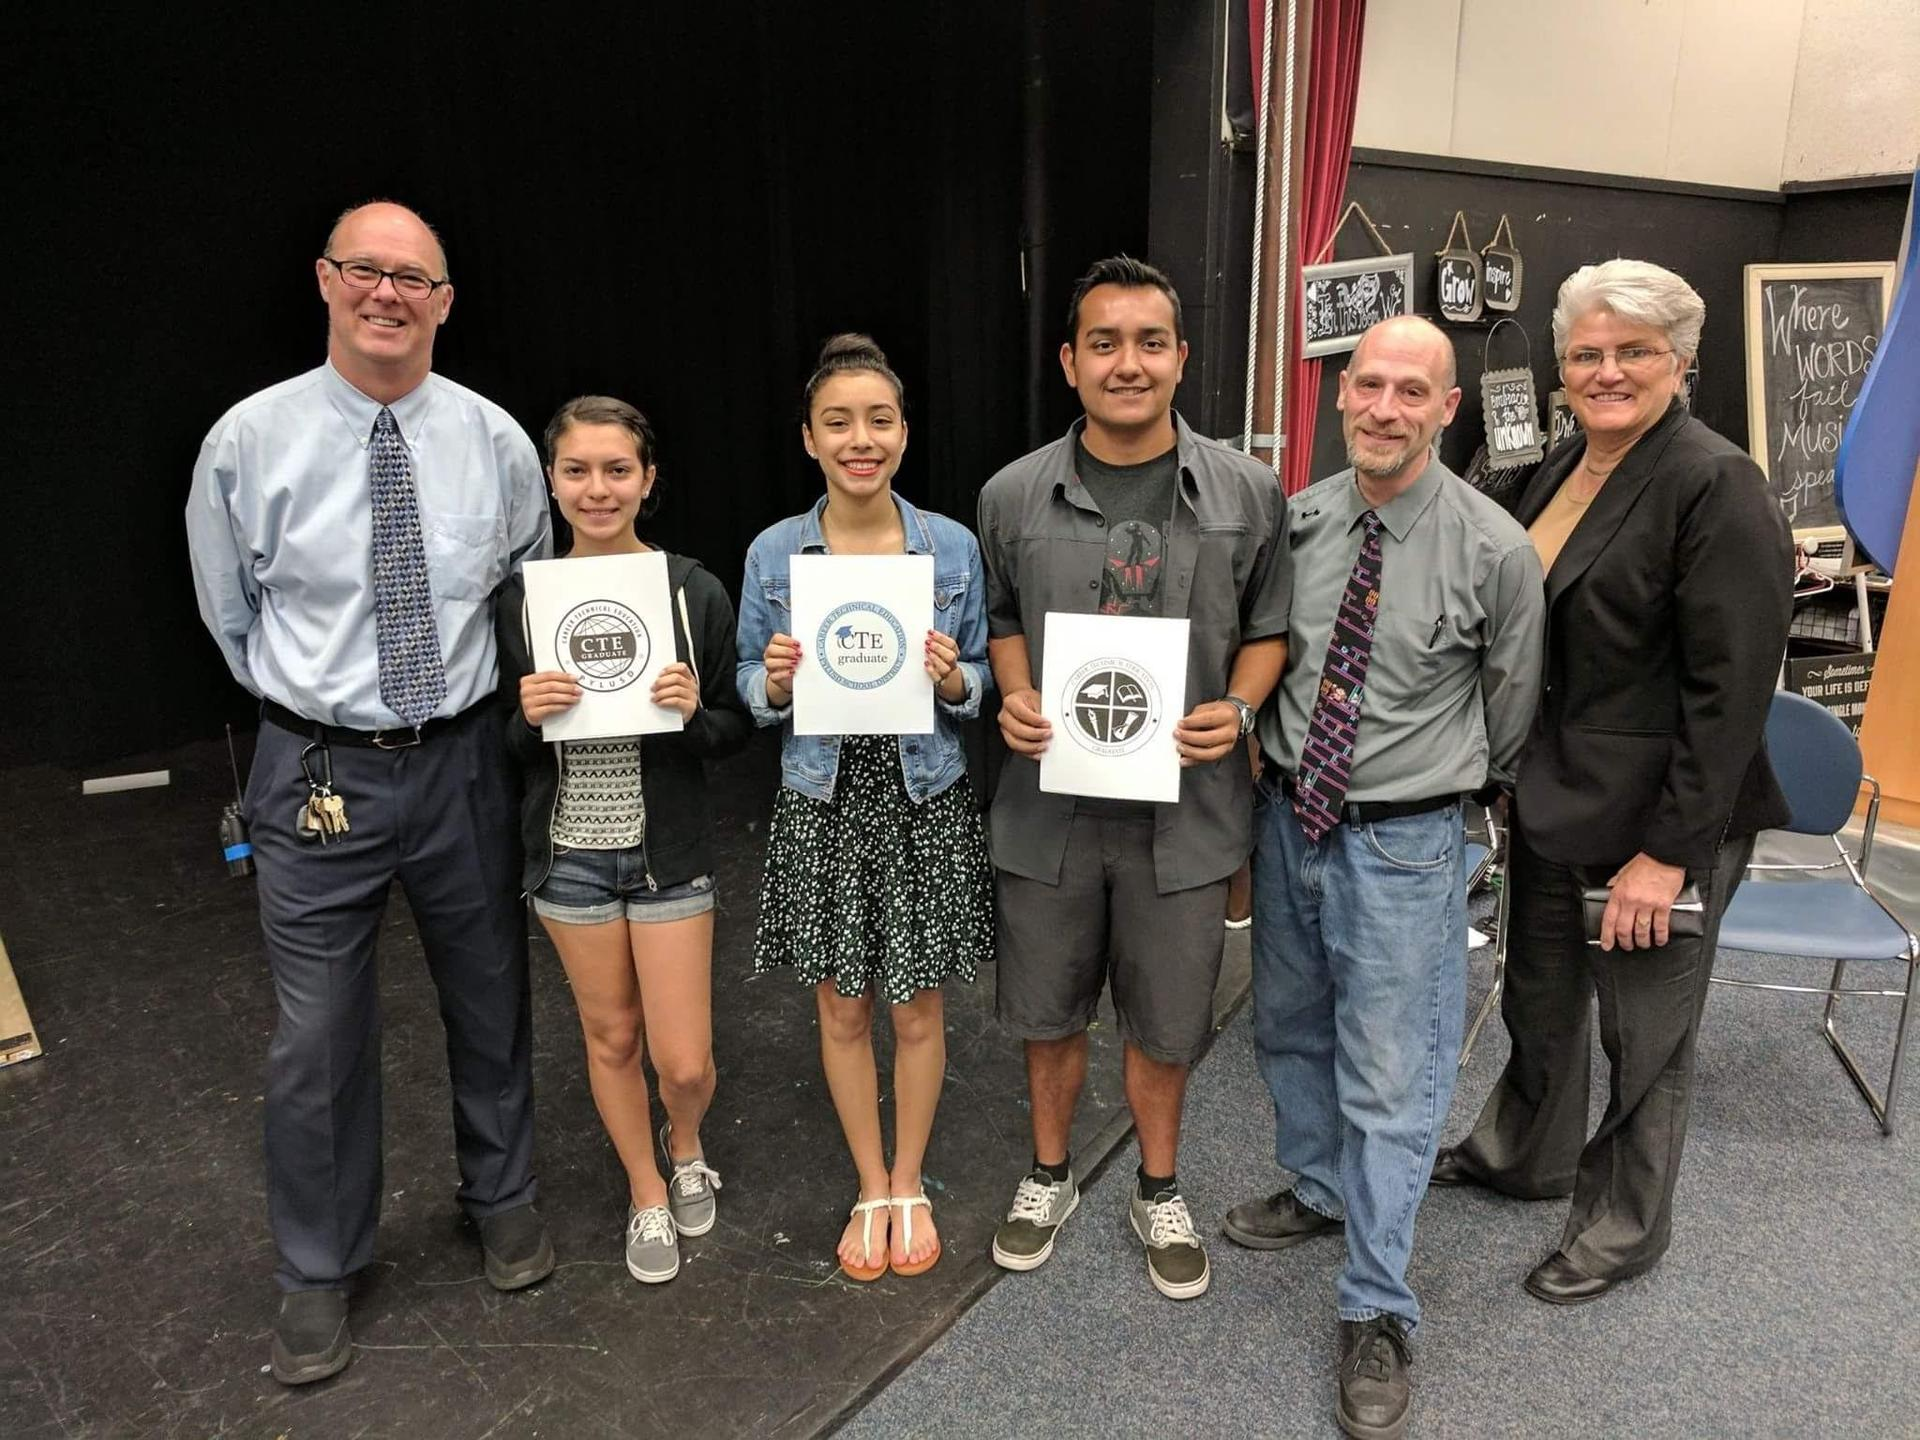 3 finalists in the PYLUSD medallion design competition